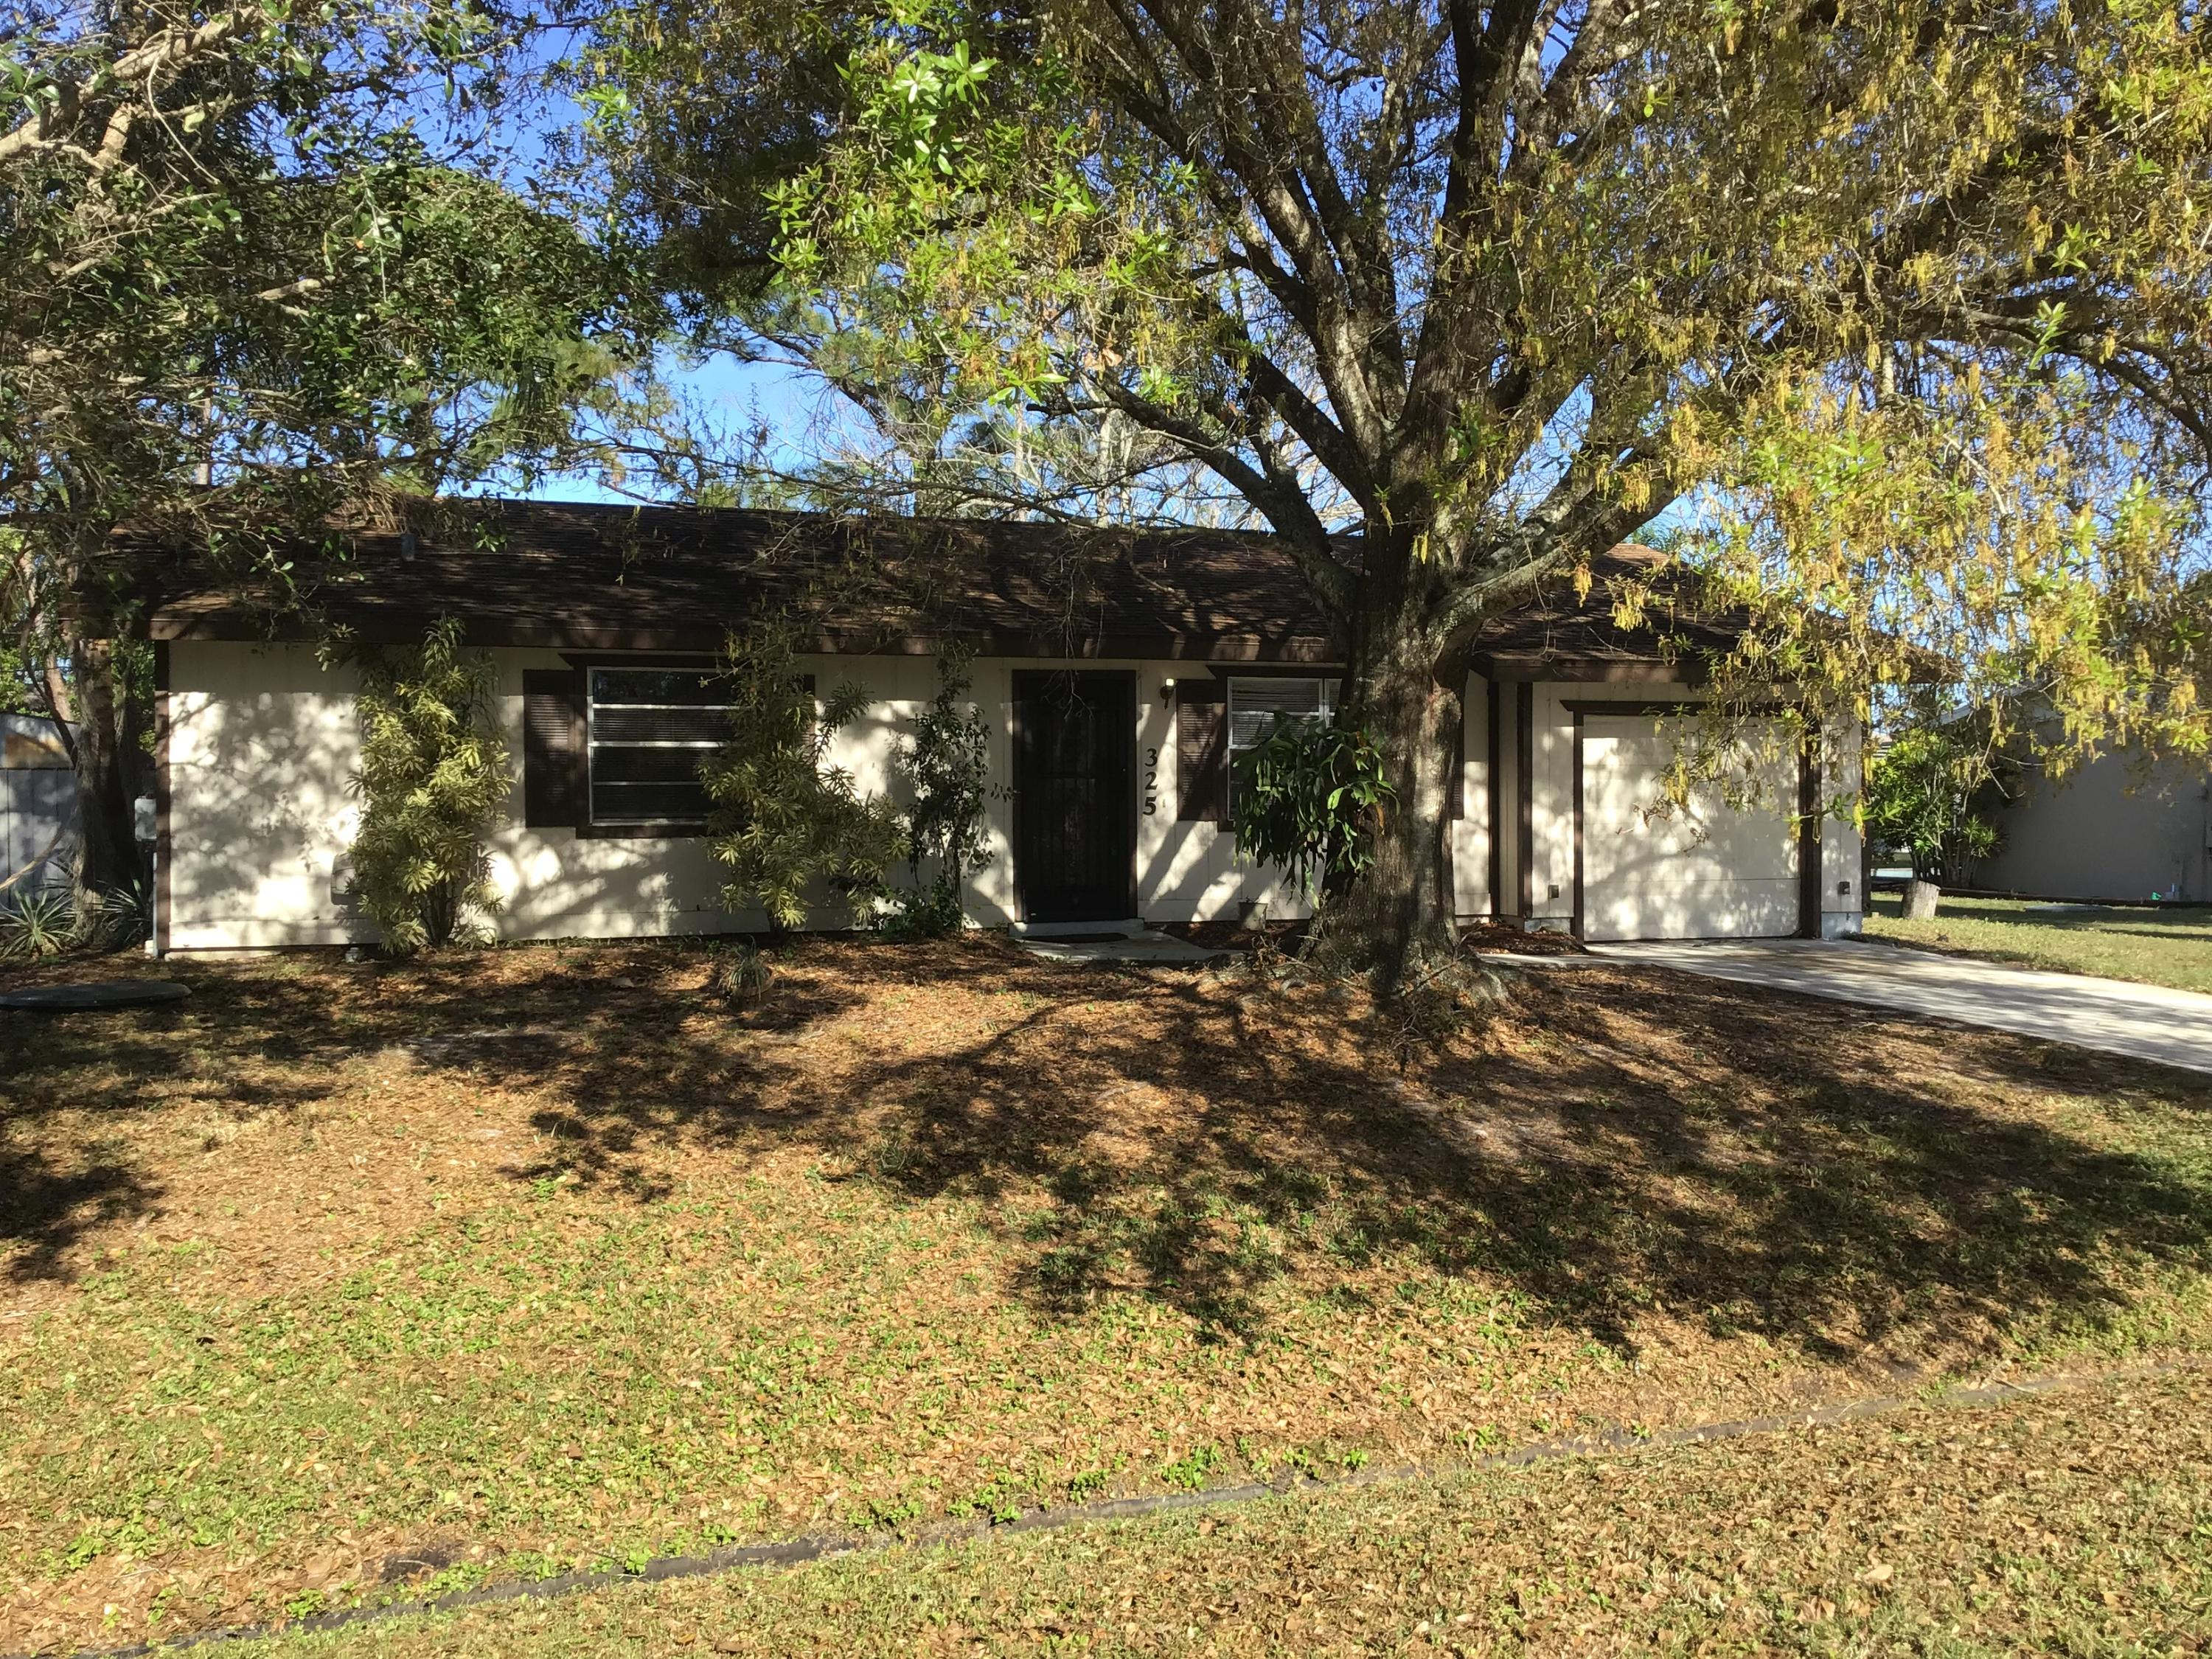 325 Ferris Drive, Port Saint Lucie, Florida 34983, 2 Bedrooms Bedrooms, ,2 BathroomsBathrooms,Single Family,For Sale,Ferris,RX-10496958